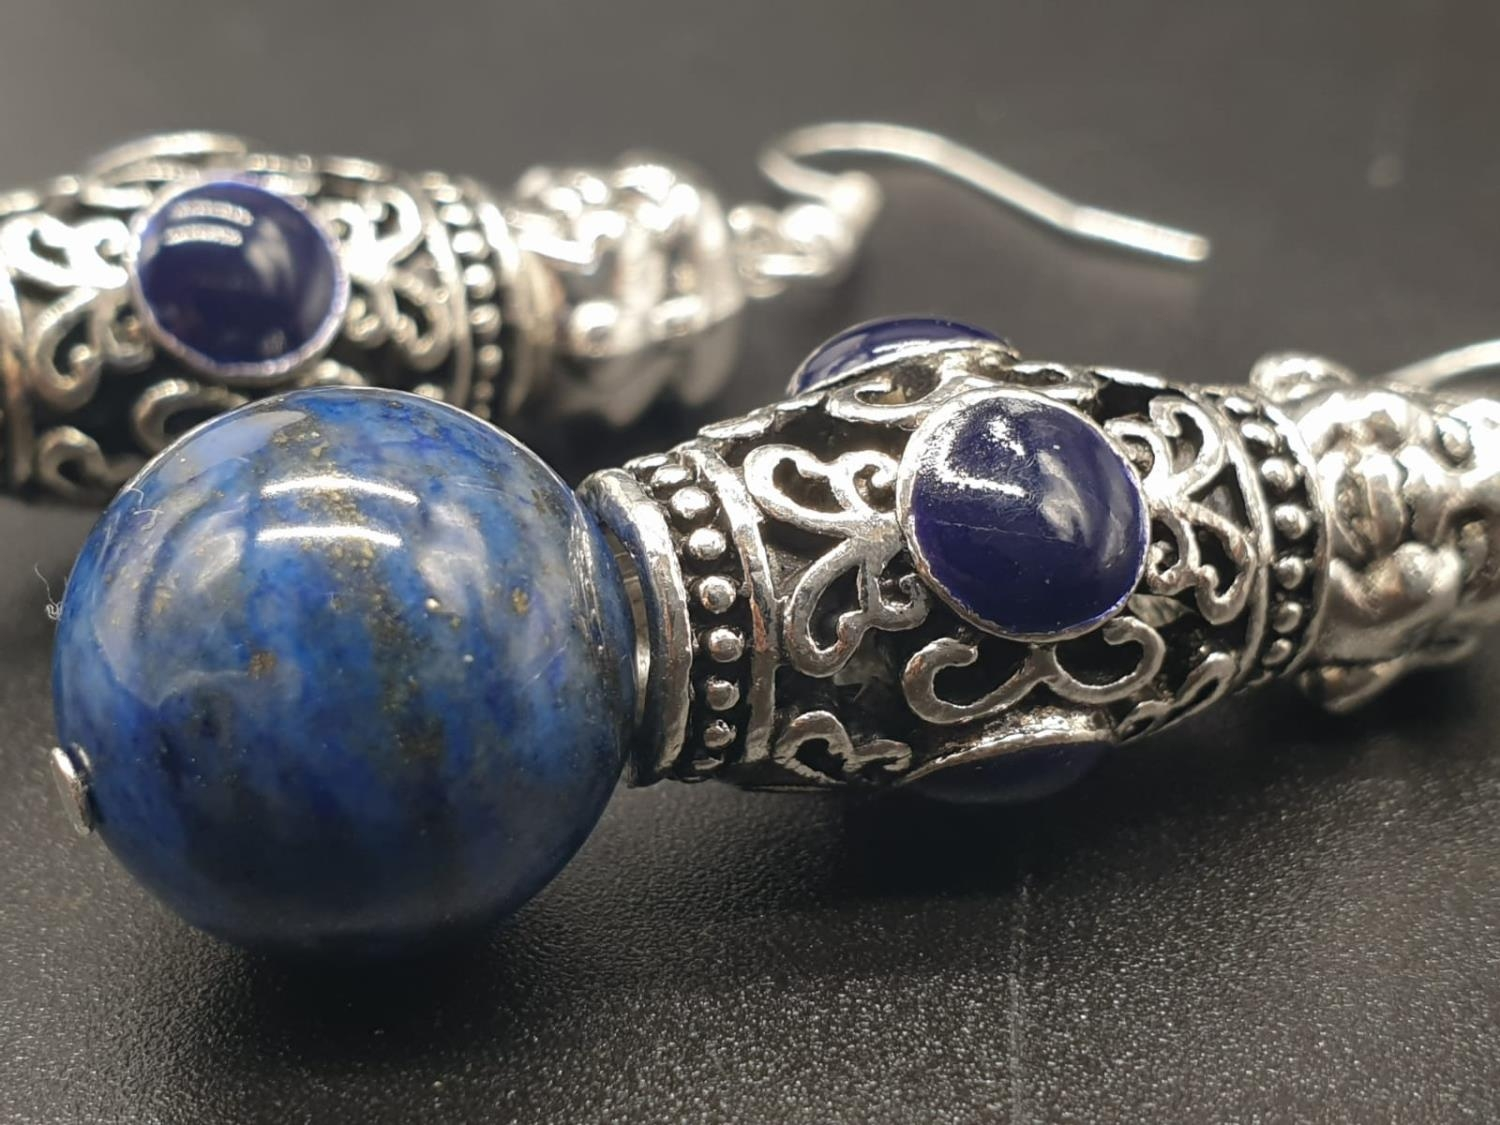 A Tibetan Buddhist lapis lazuli necklace and earrings set in a presentation box. Necklace length: - Image 9 of 11